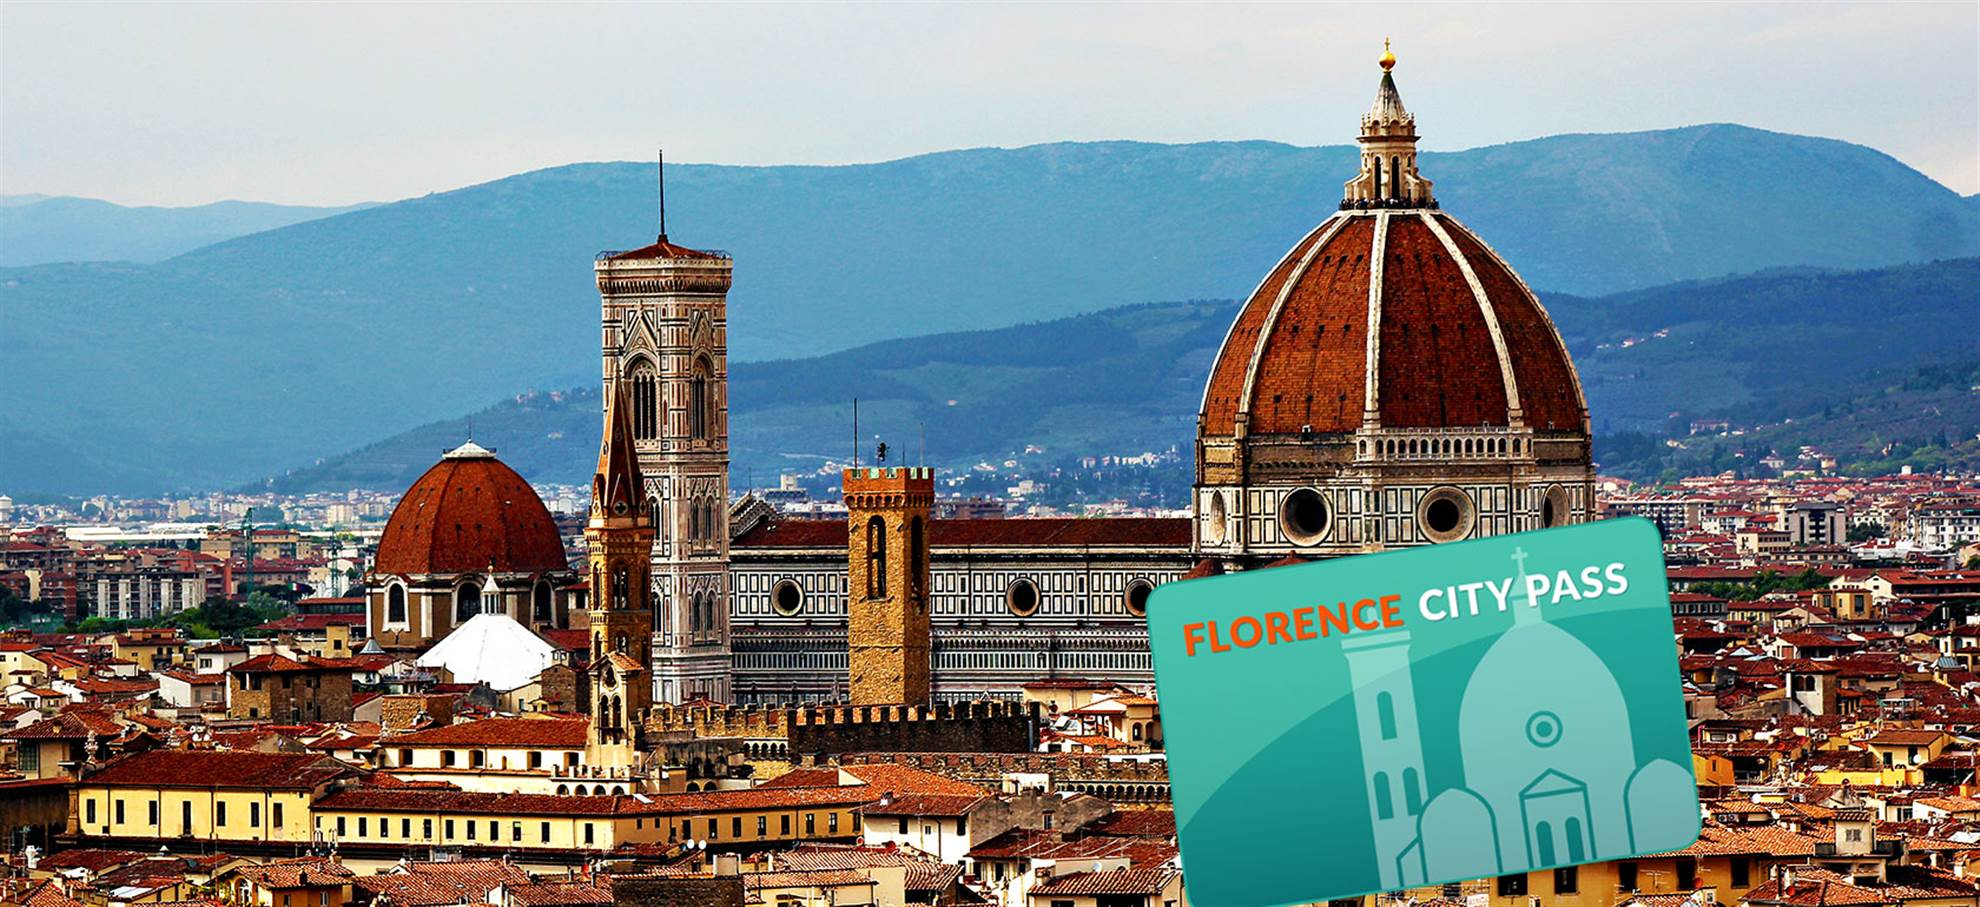 Firenze City Pass